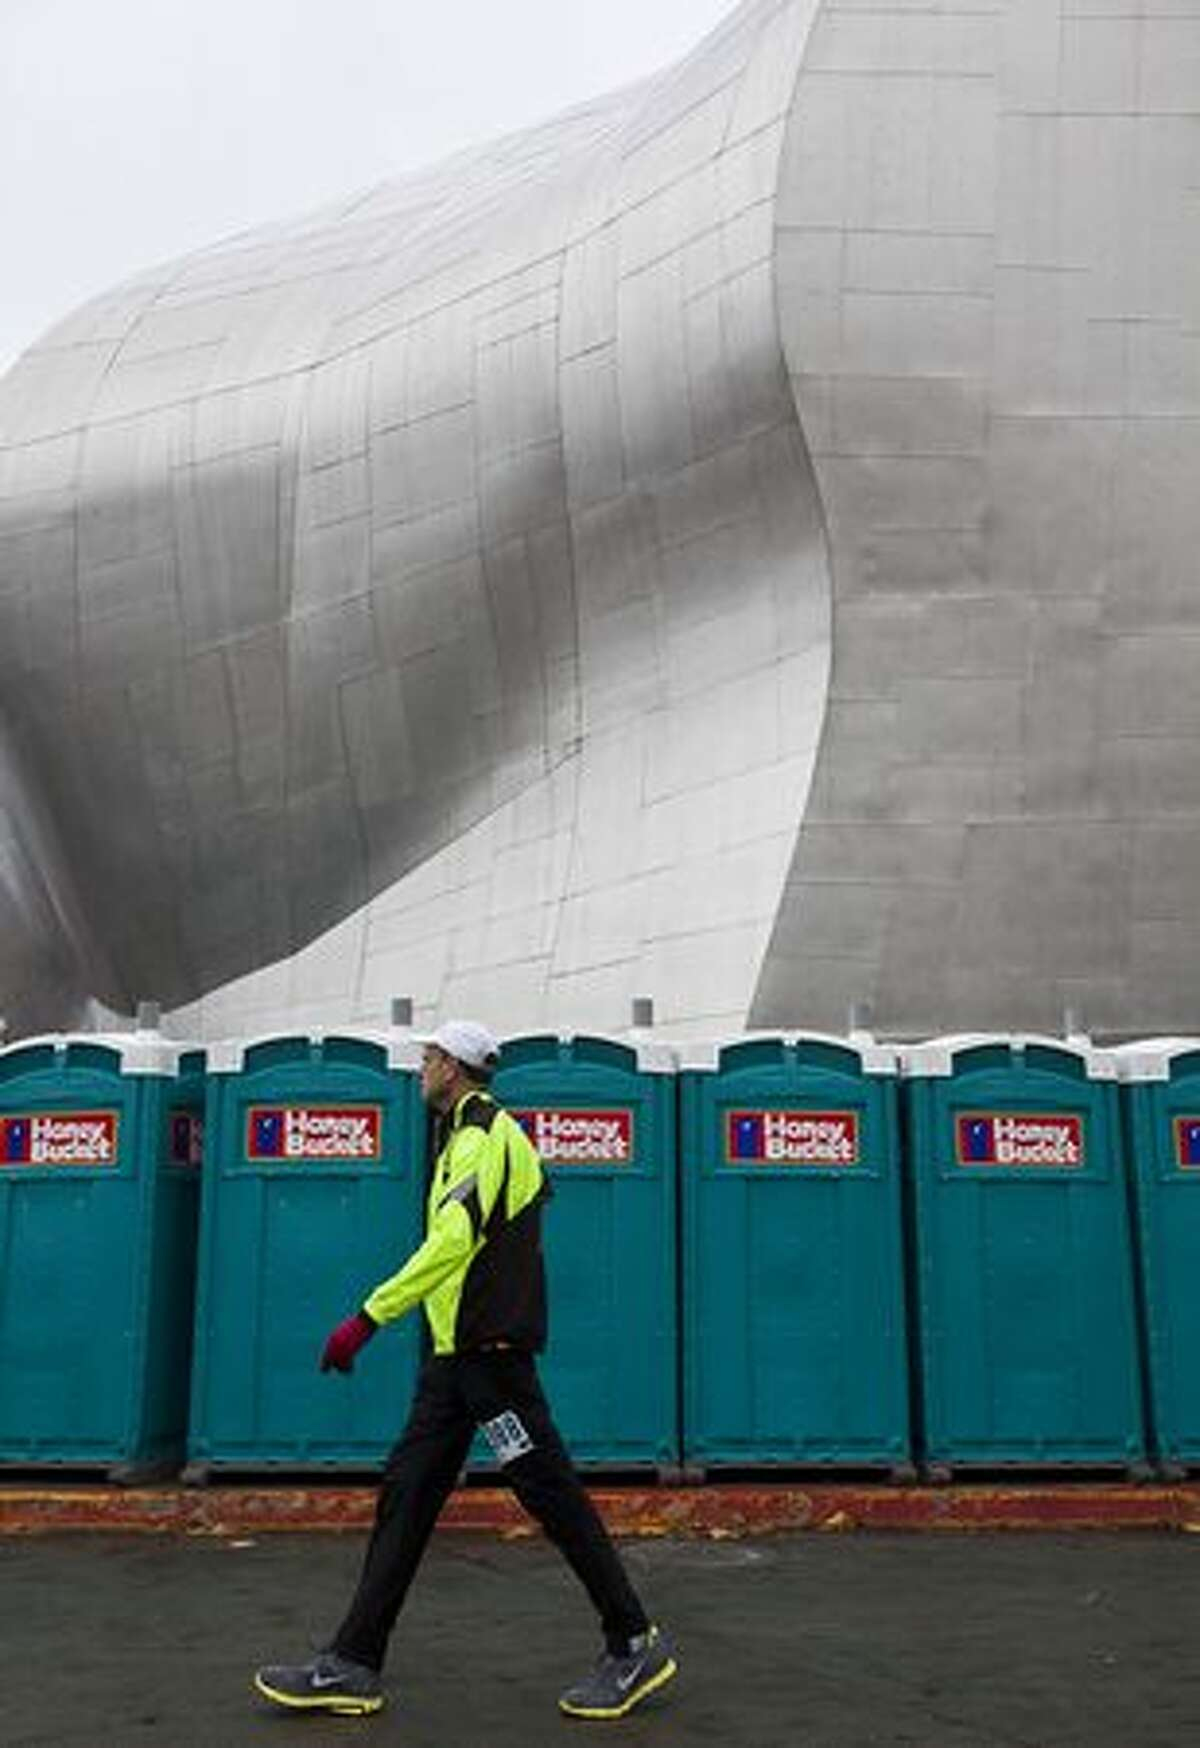 A runner passes in front a row of portable toilets in front of the Experience Music Project prior to the Seattle Marathon on Sunday.